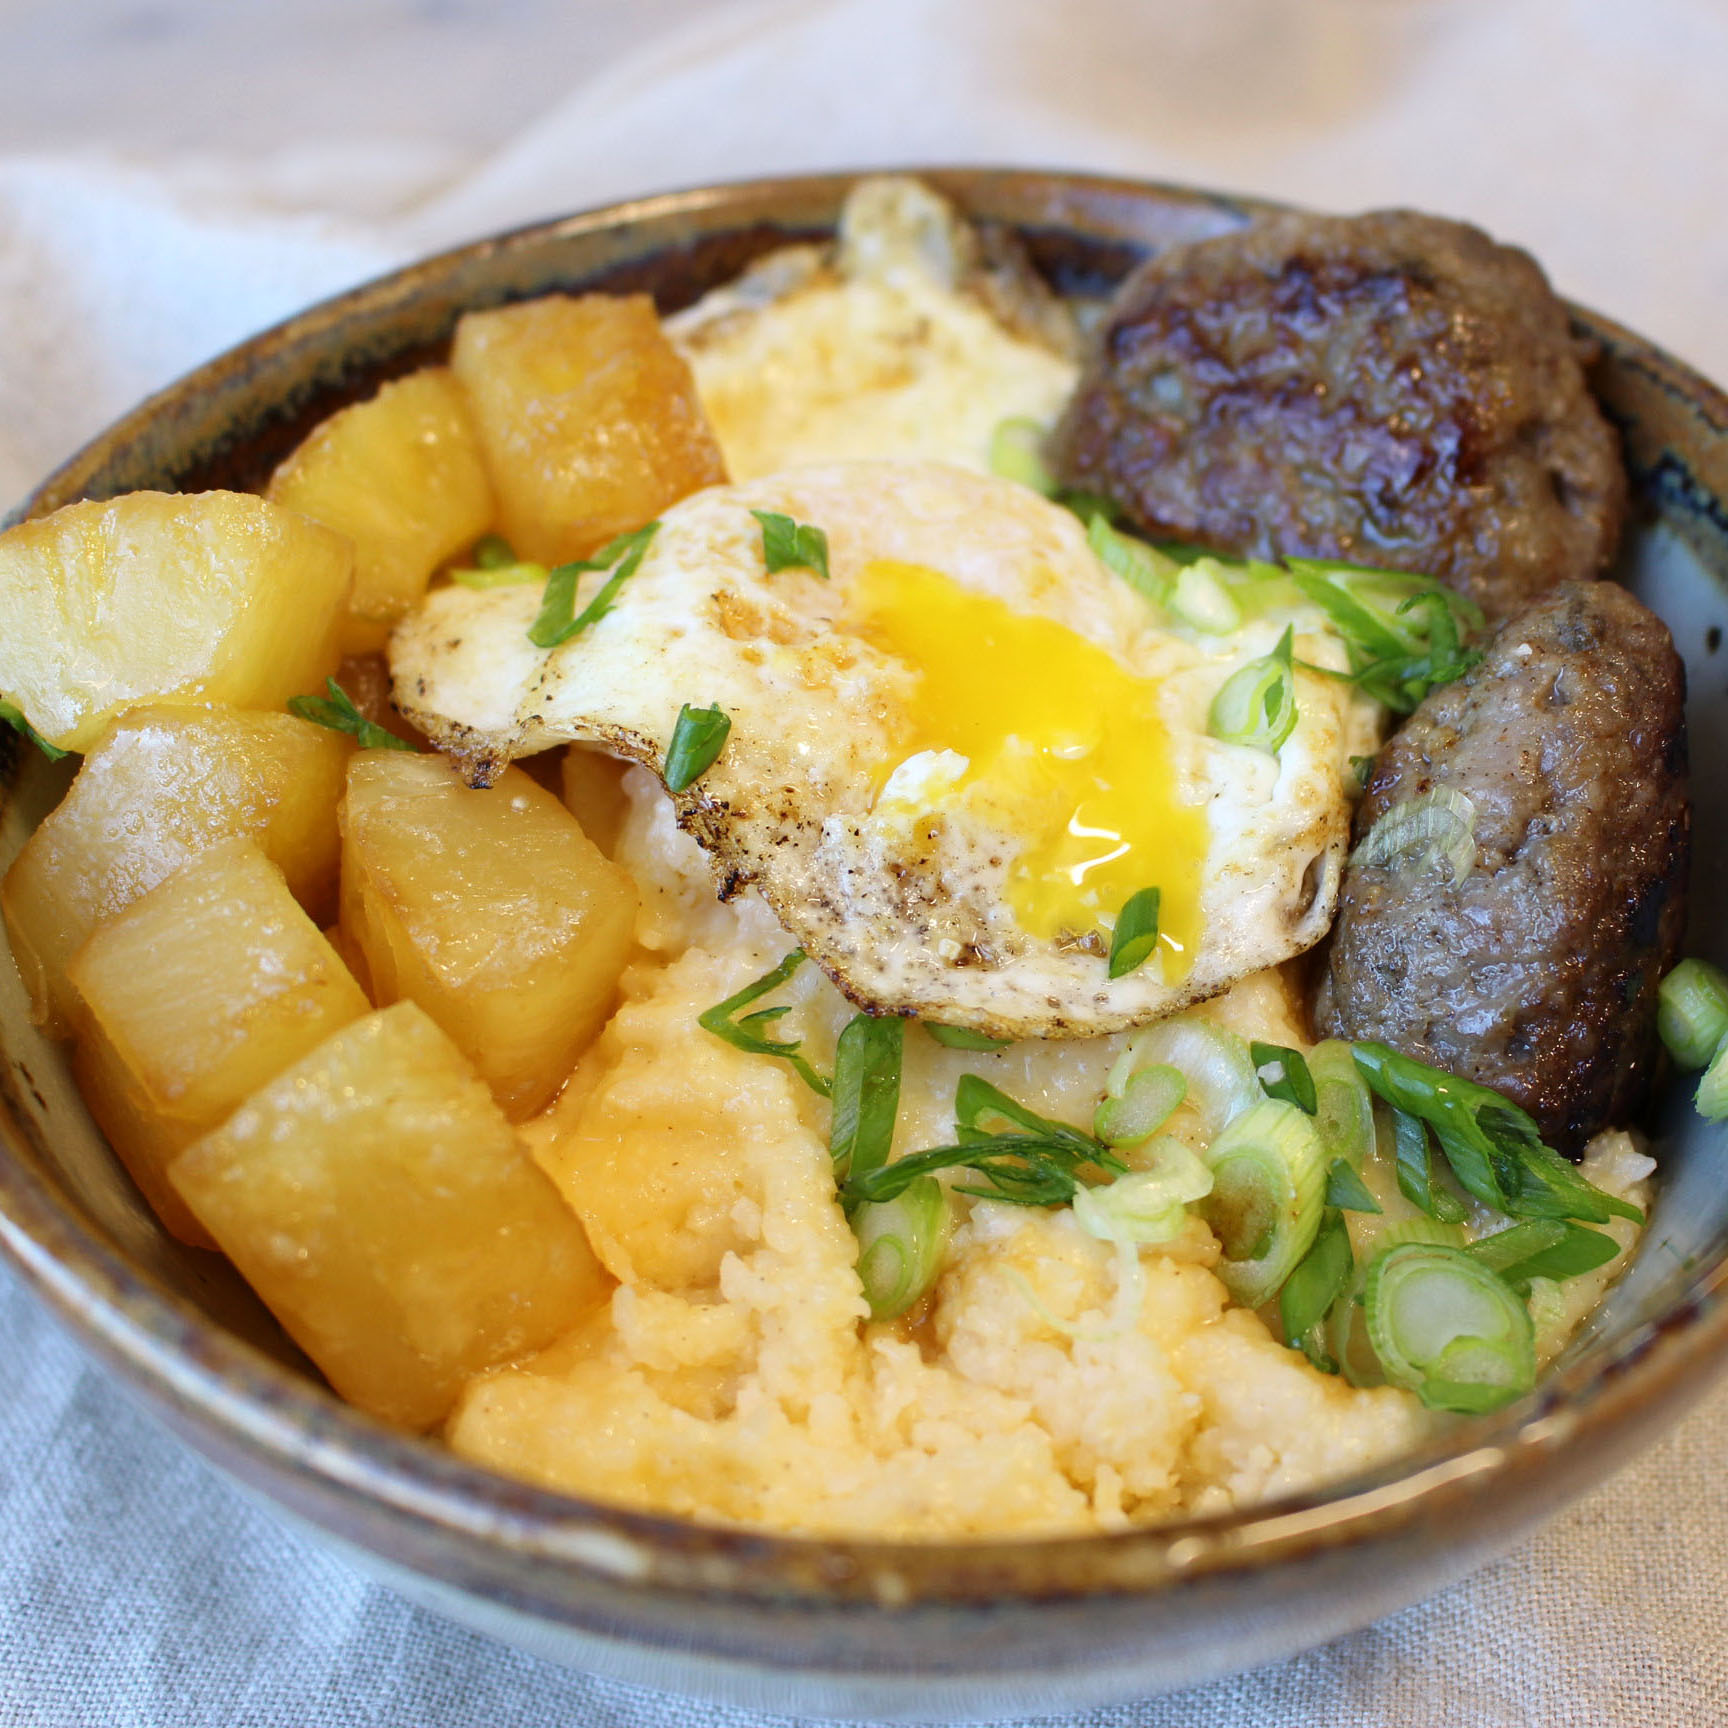 Sausage Pineapple and Grits Bowl